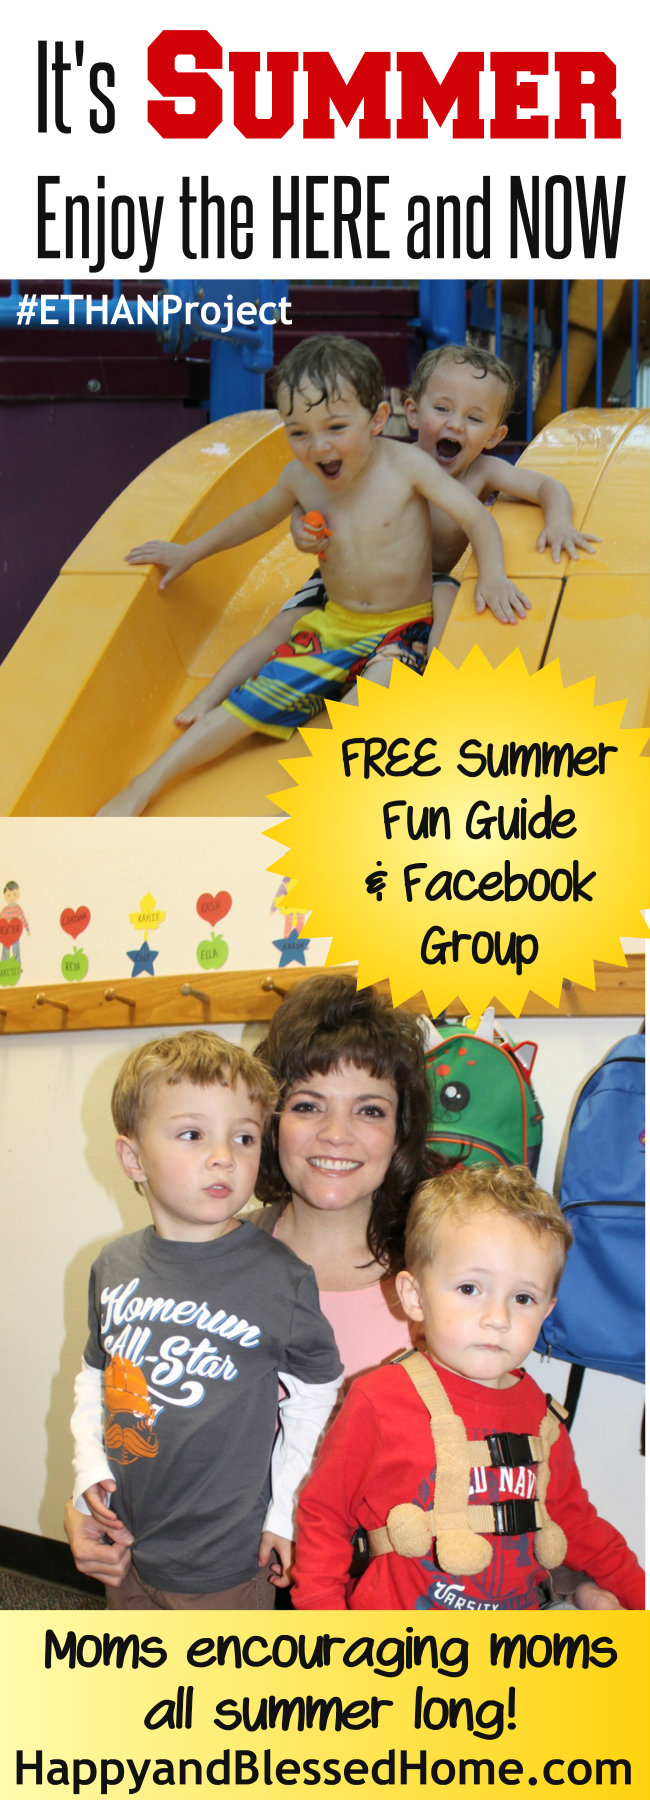 Its Summer Enjoy the Here and Now - free PDF summer planner and Facebook Group to share inspiring summer fun with other moms - details on HappyandBlessedHome.com